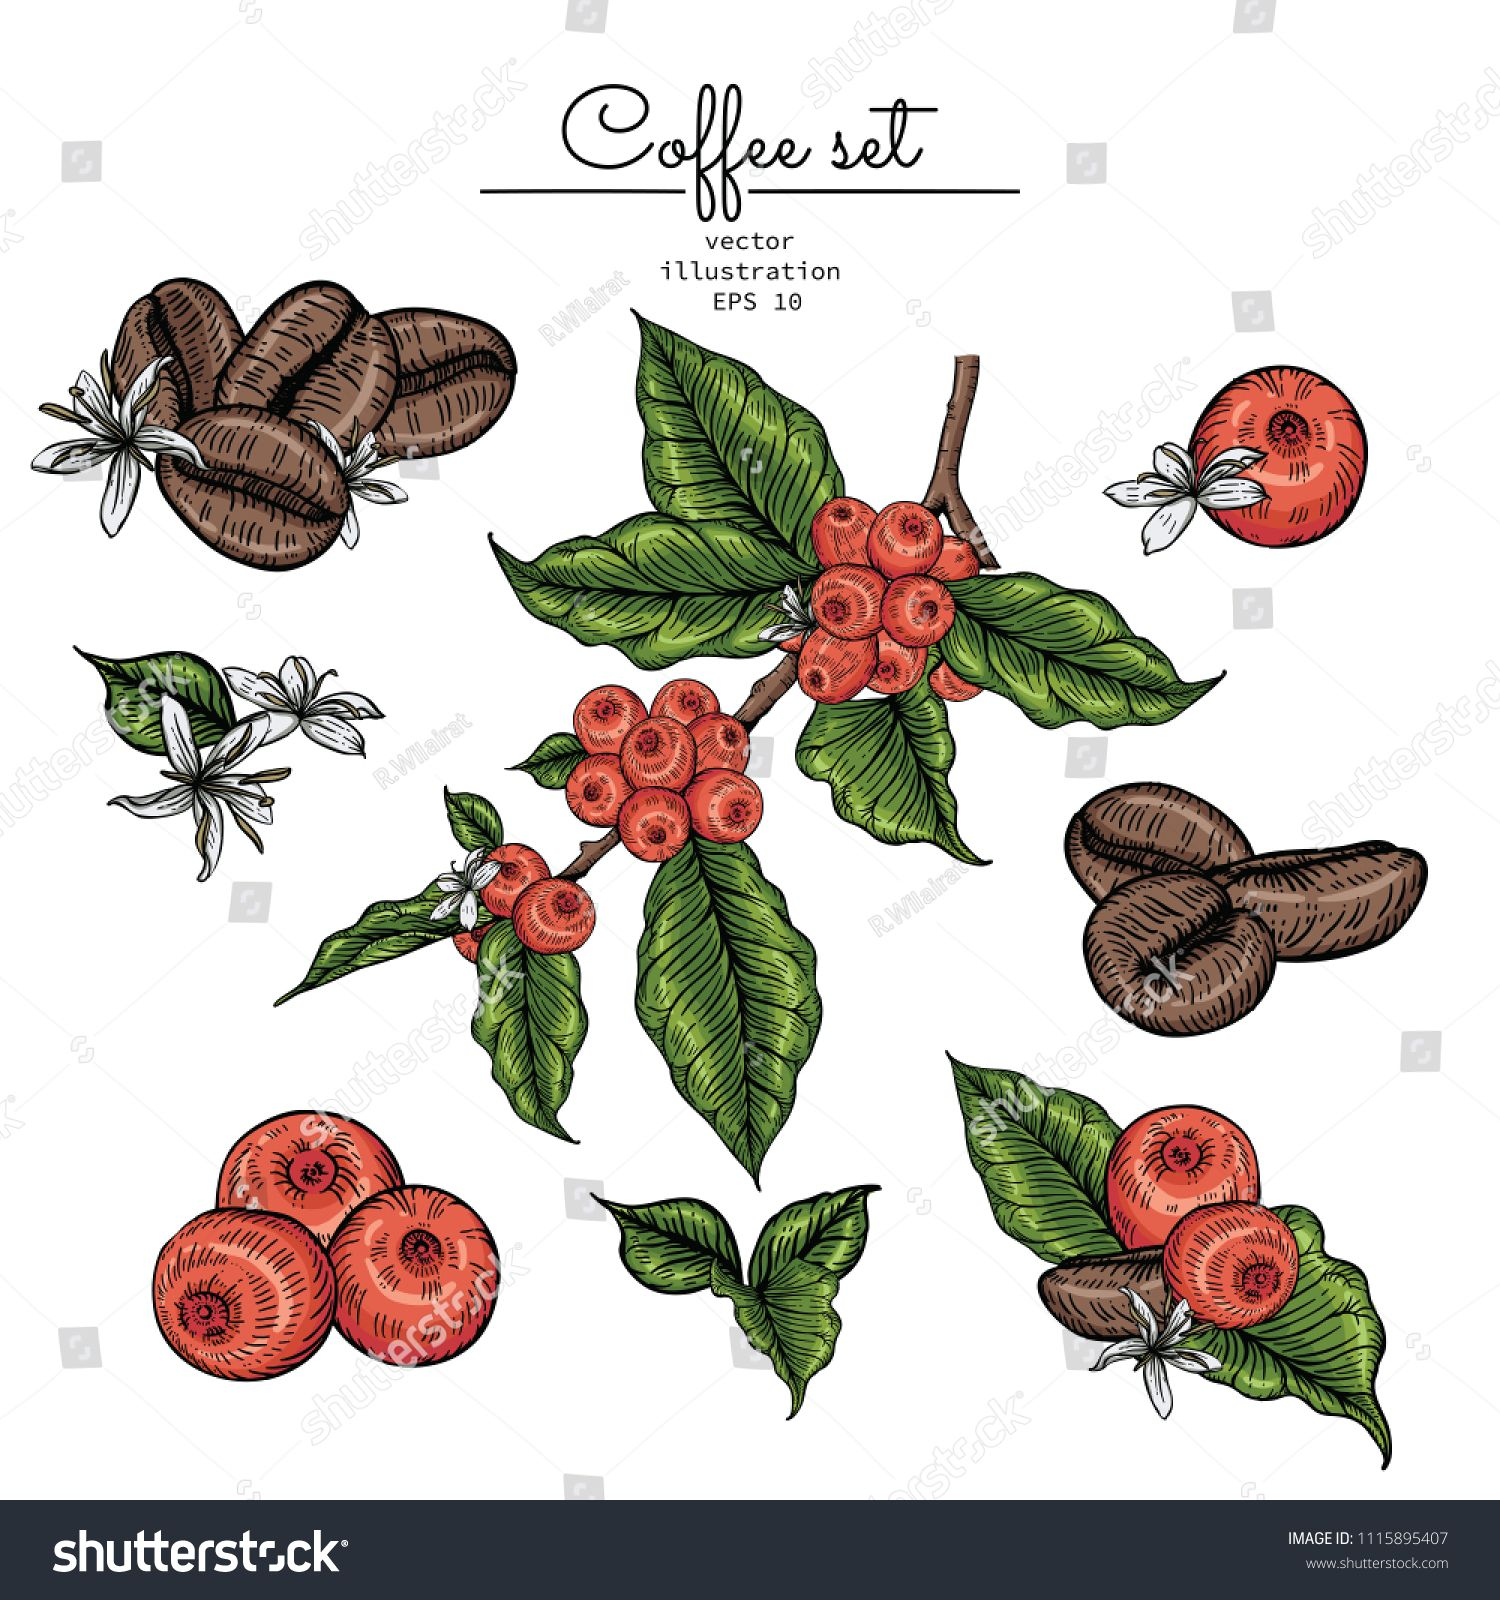 Sketch Floral Botany Collection Coffee Bean Leaf Berries And Flower Drawings Line Art On White Backgrounds Hand D In 2020 Flower Drawing Floral Botany Leaf Drawing